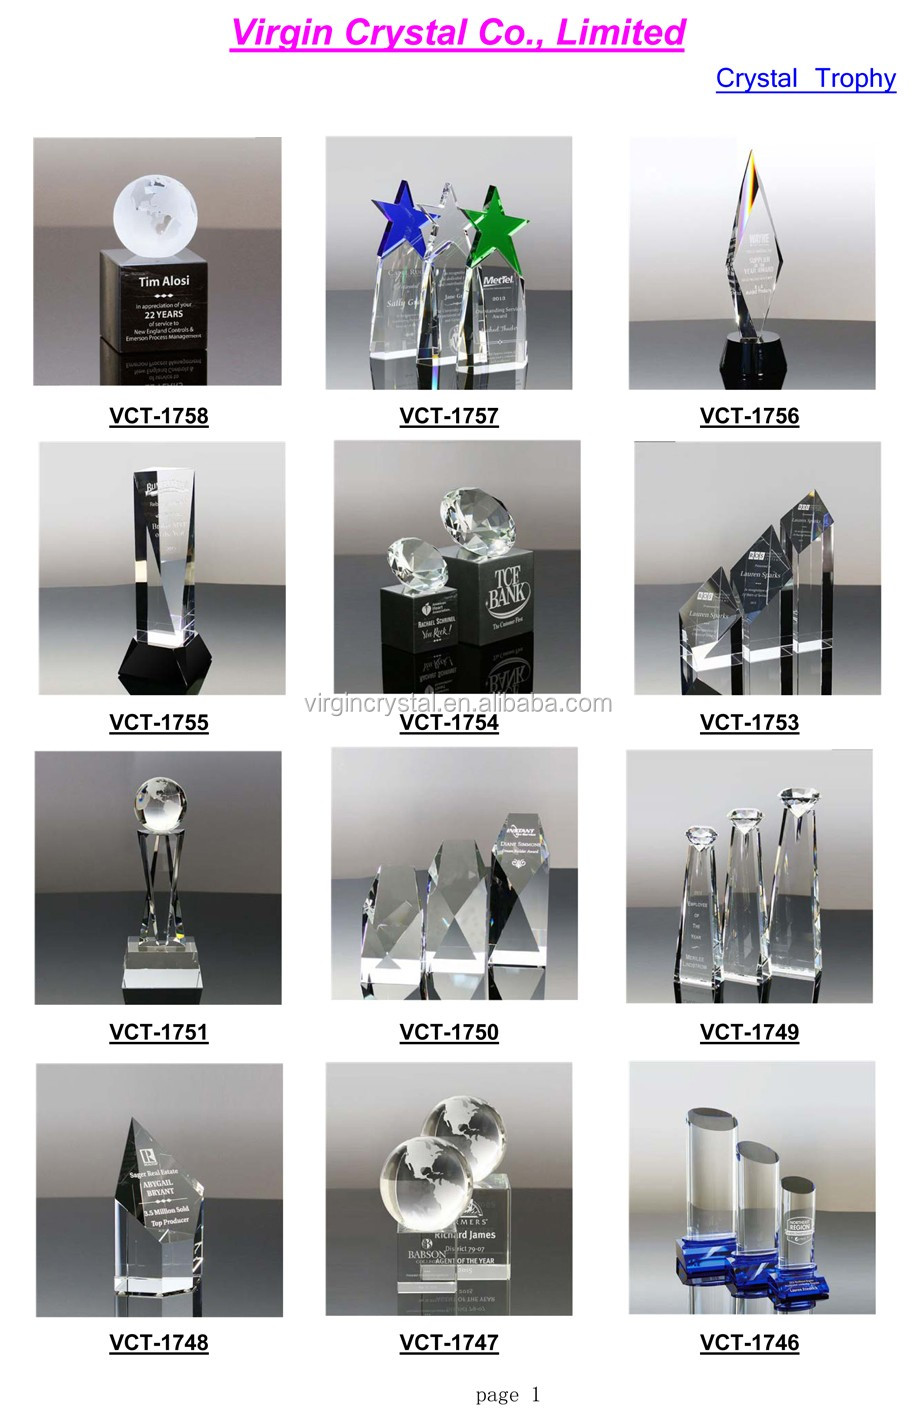 Personalized clear glass crystal globe trophy awards with crystal black base